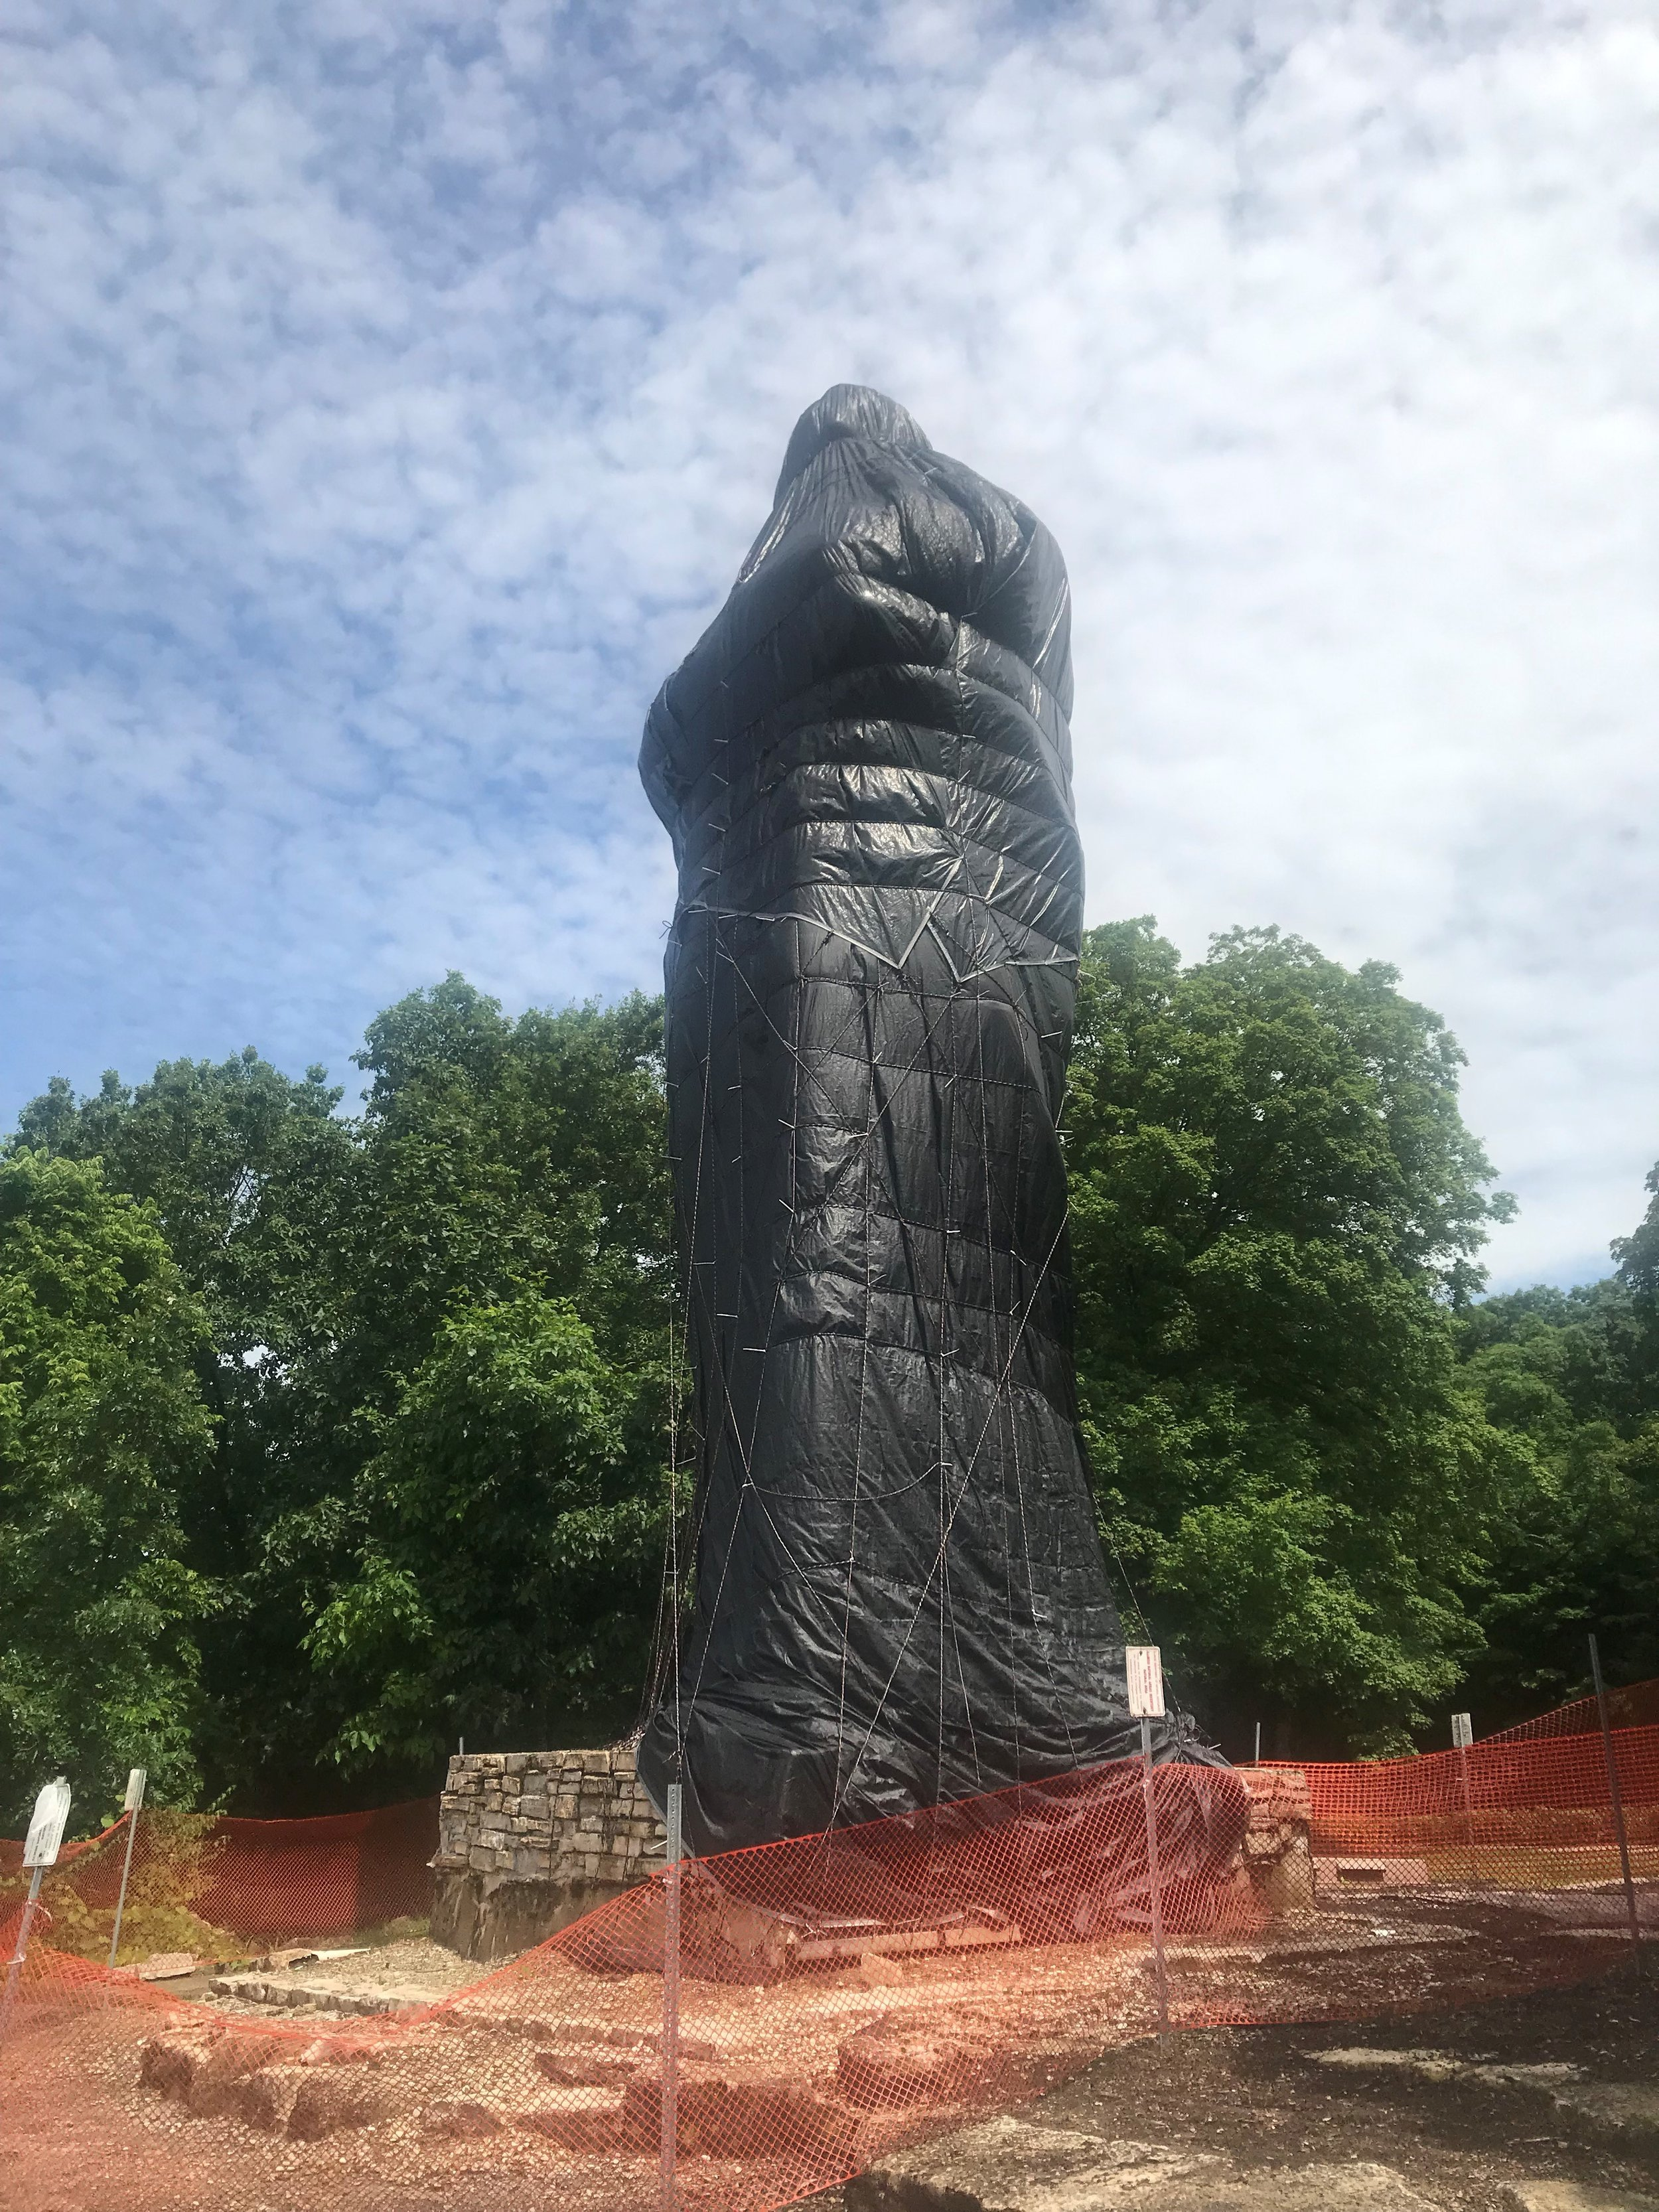 The Eternal Indian statue is wrapped in plastic awaiting a complete restoration project